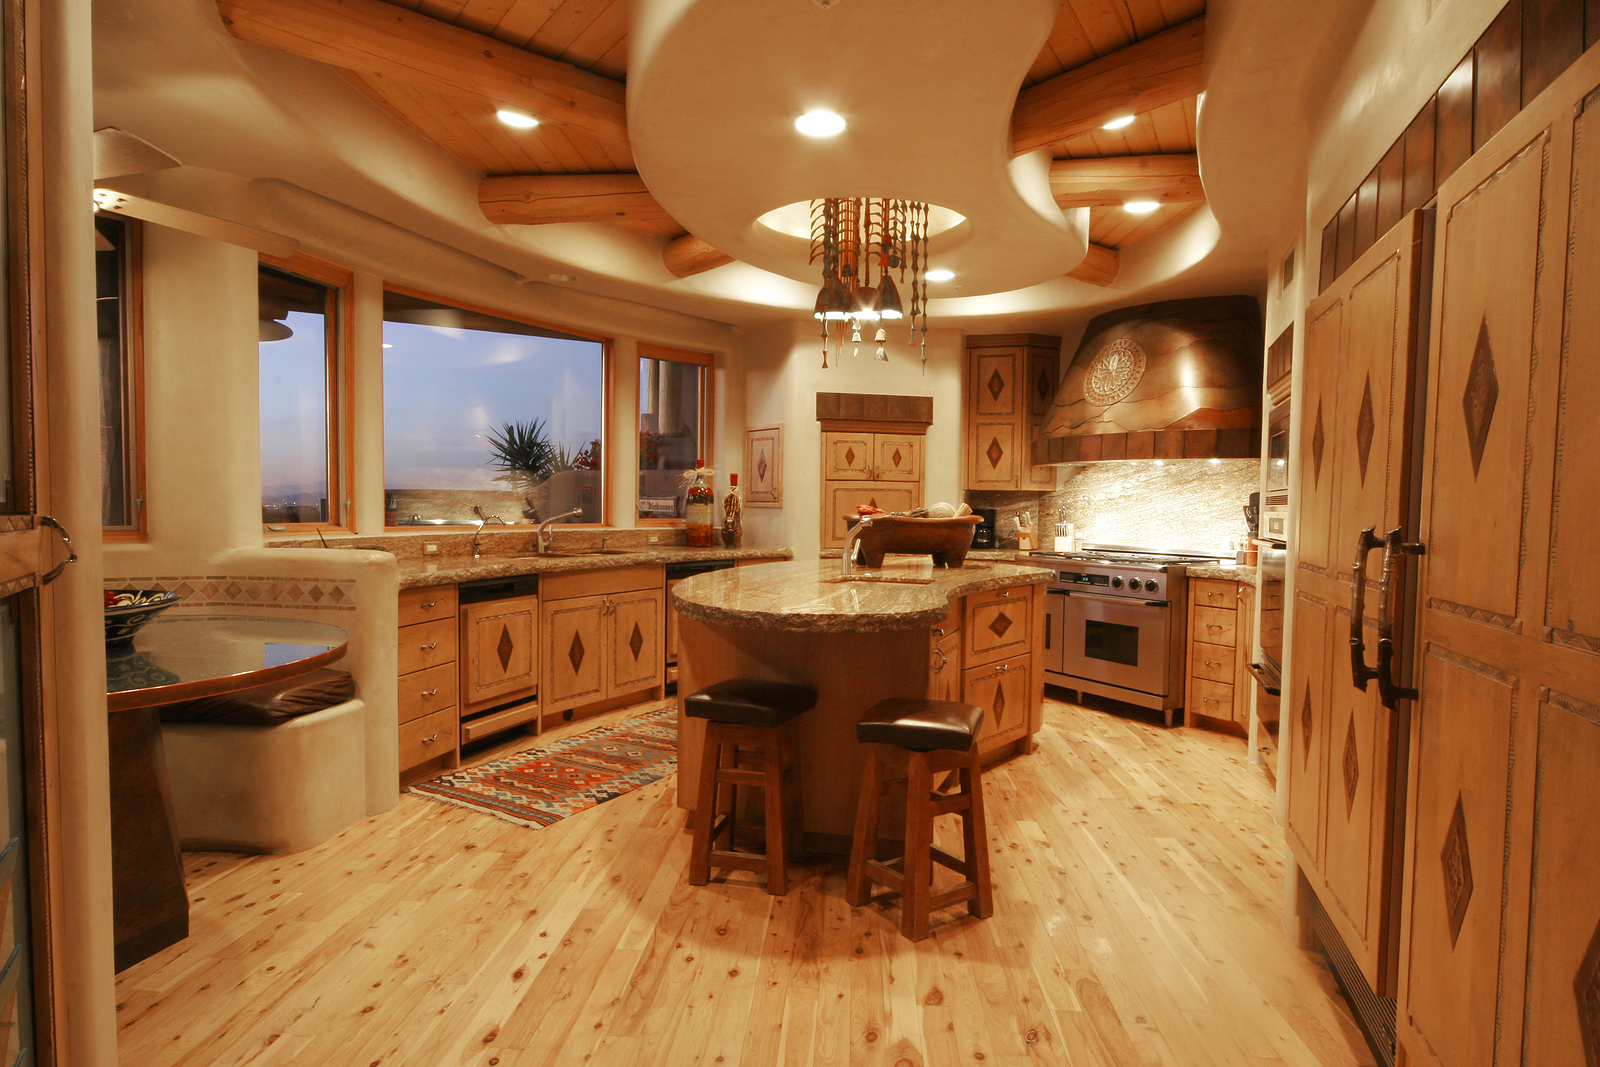 Donco designs is a pompano beach remodeling contractor for Log home kitchen designs